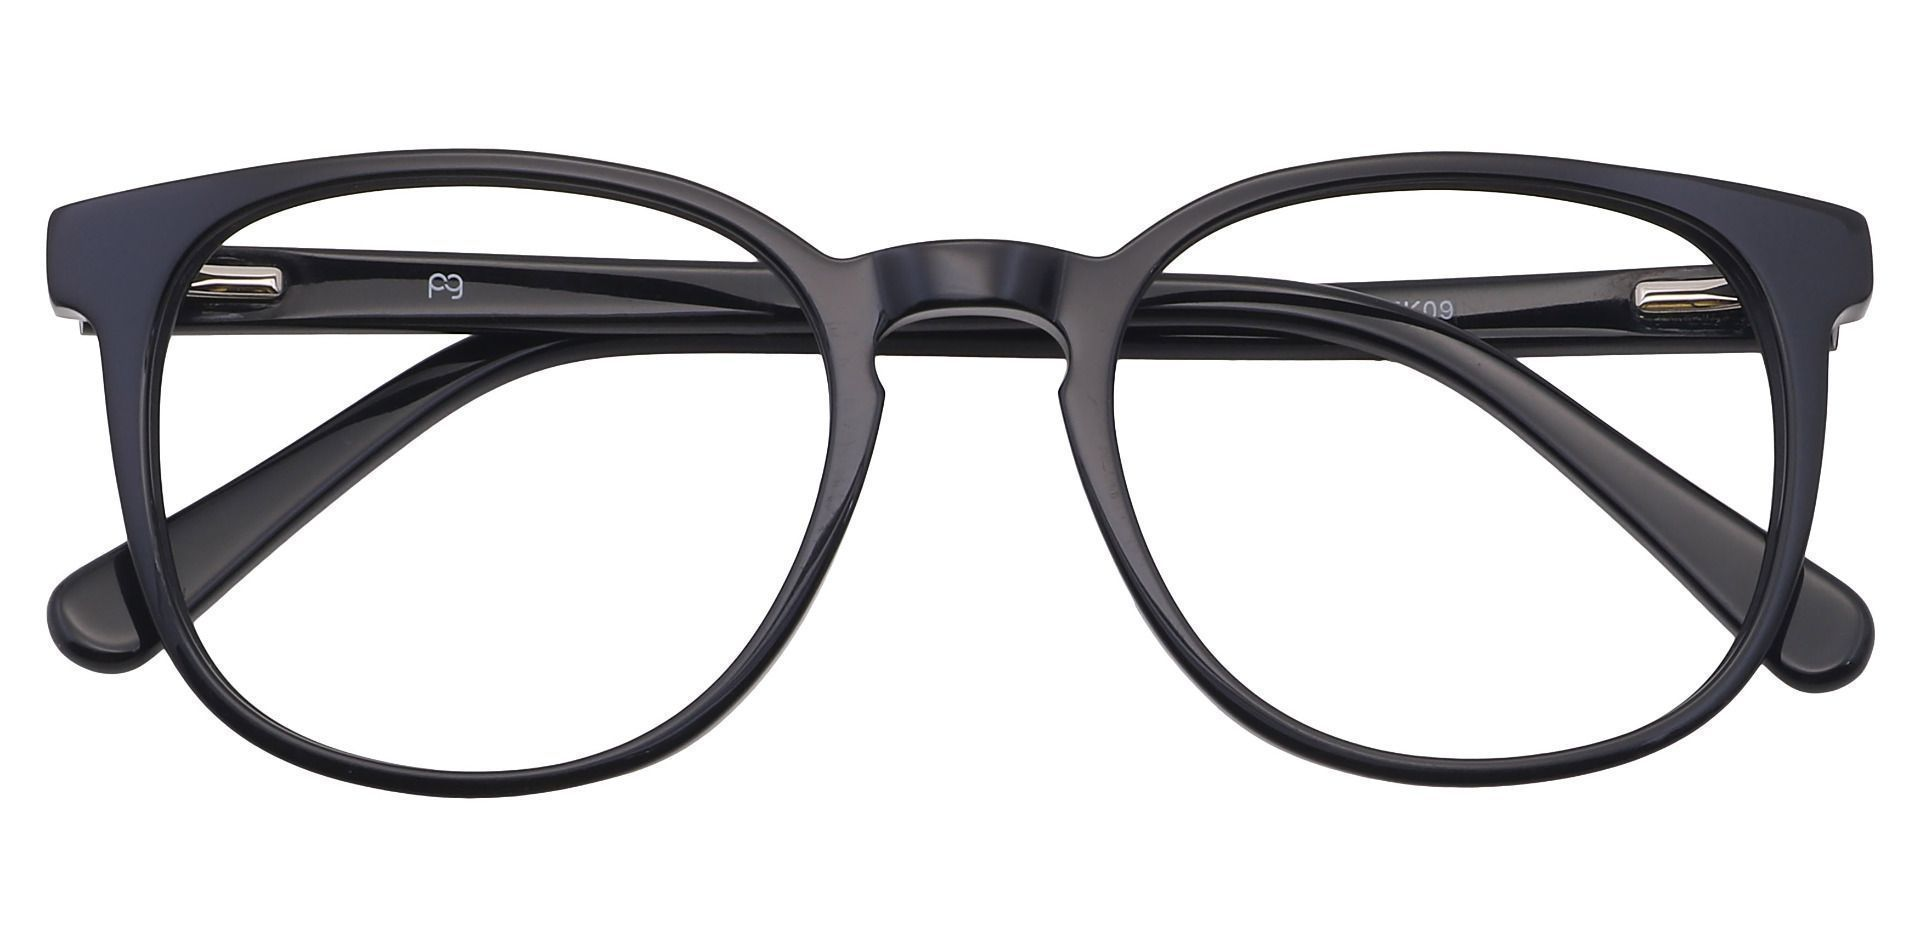 Nebula Round Prescription Glasses - Black